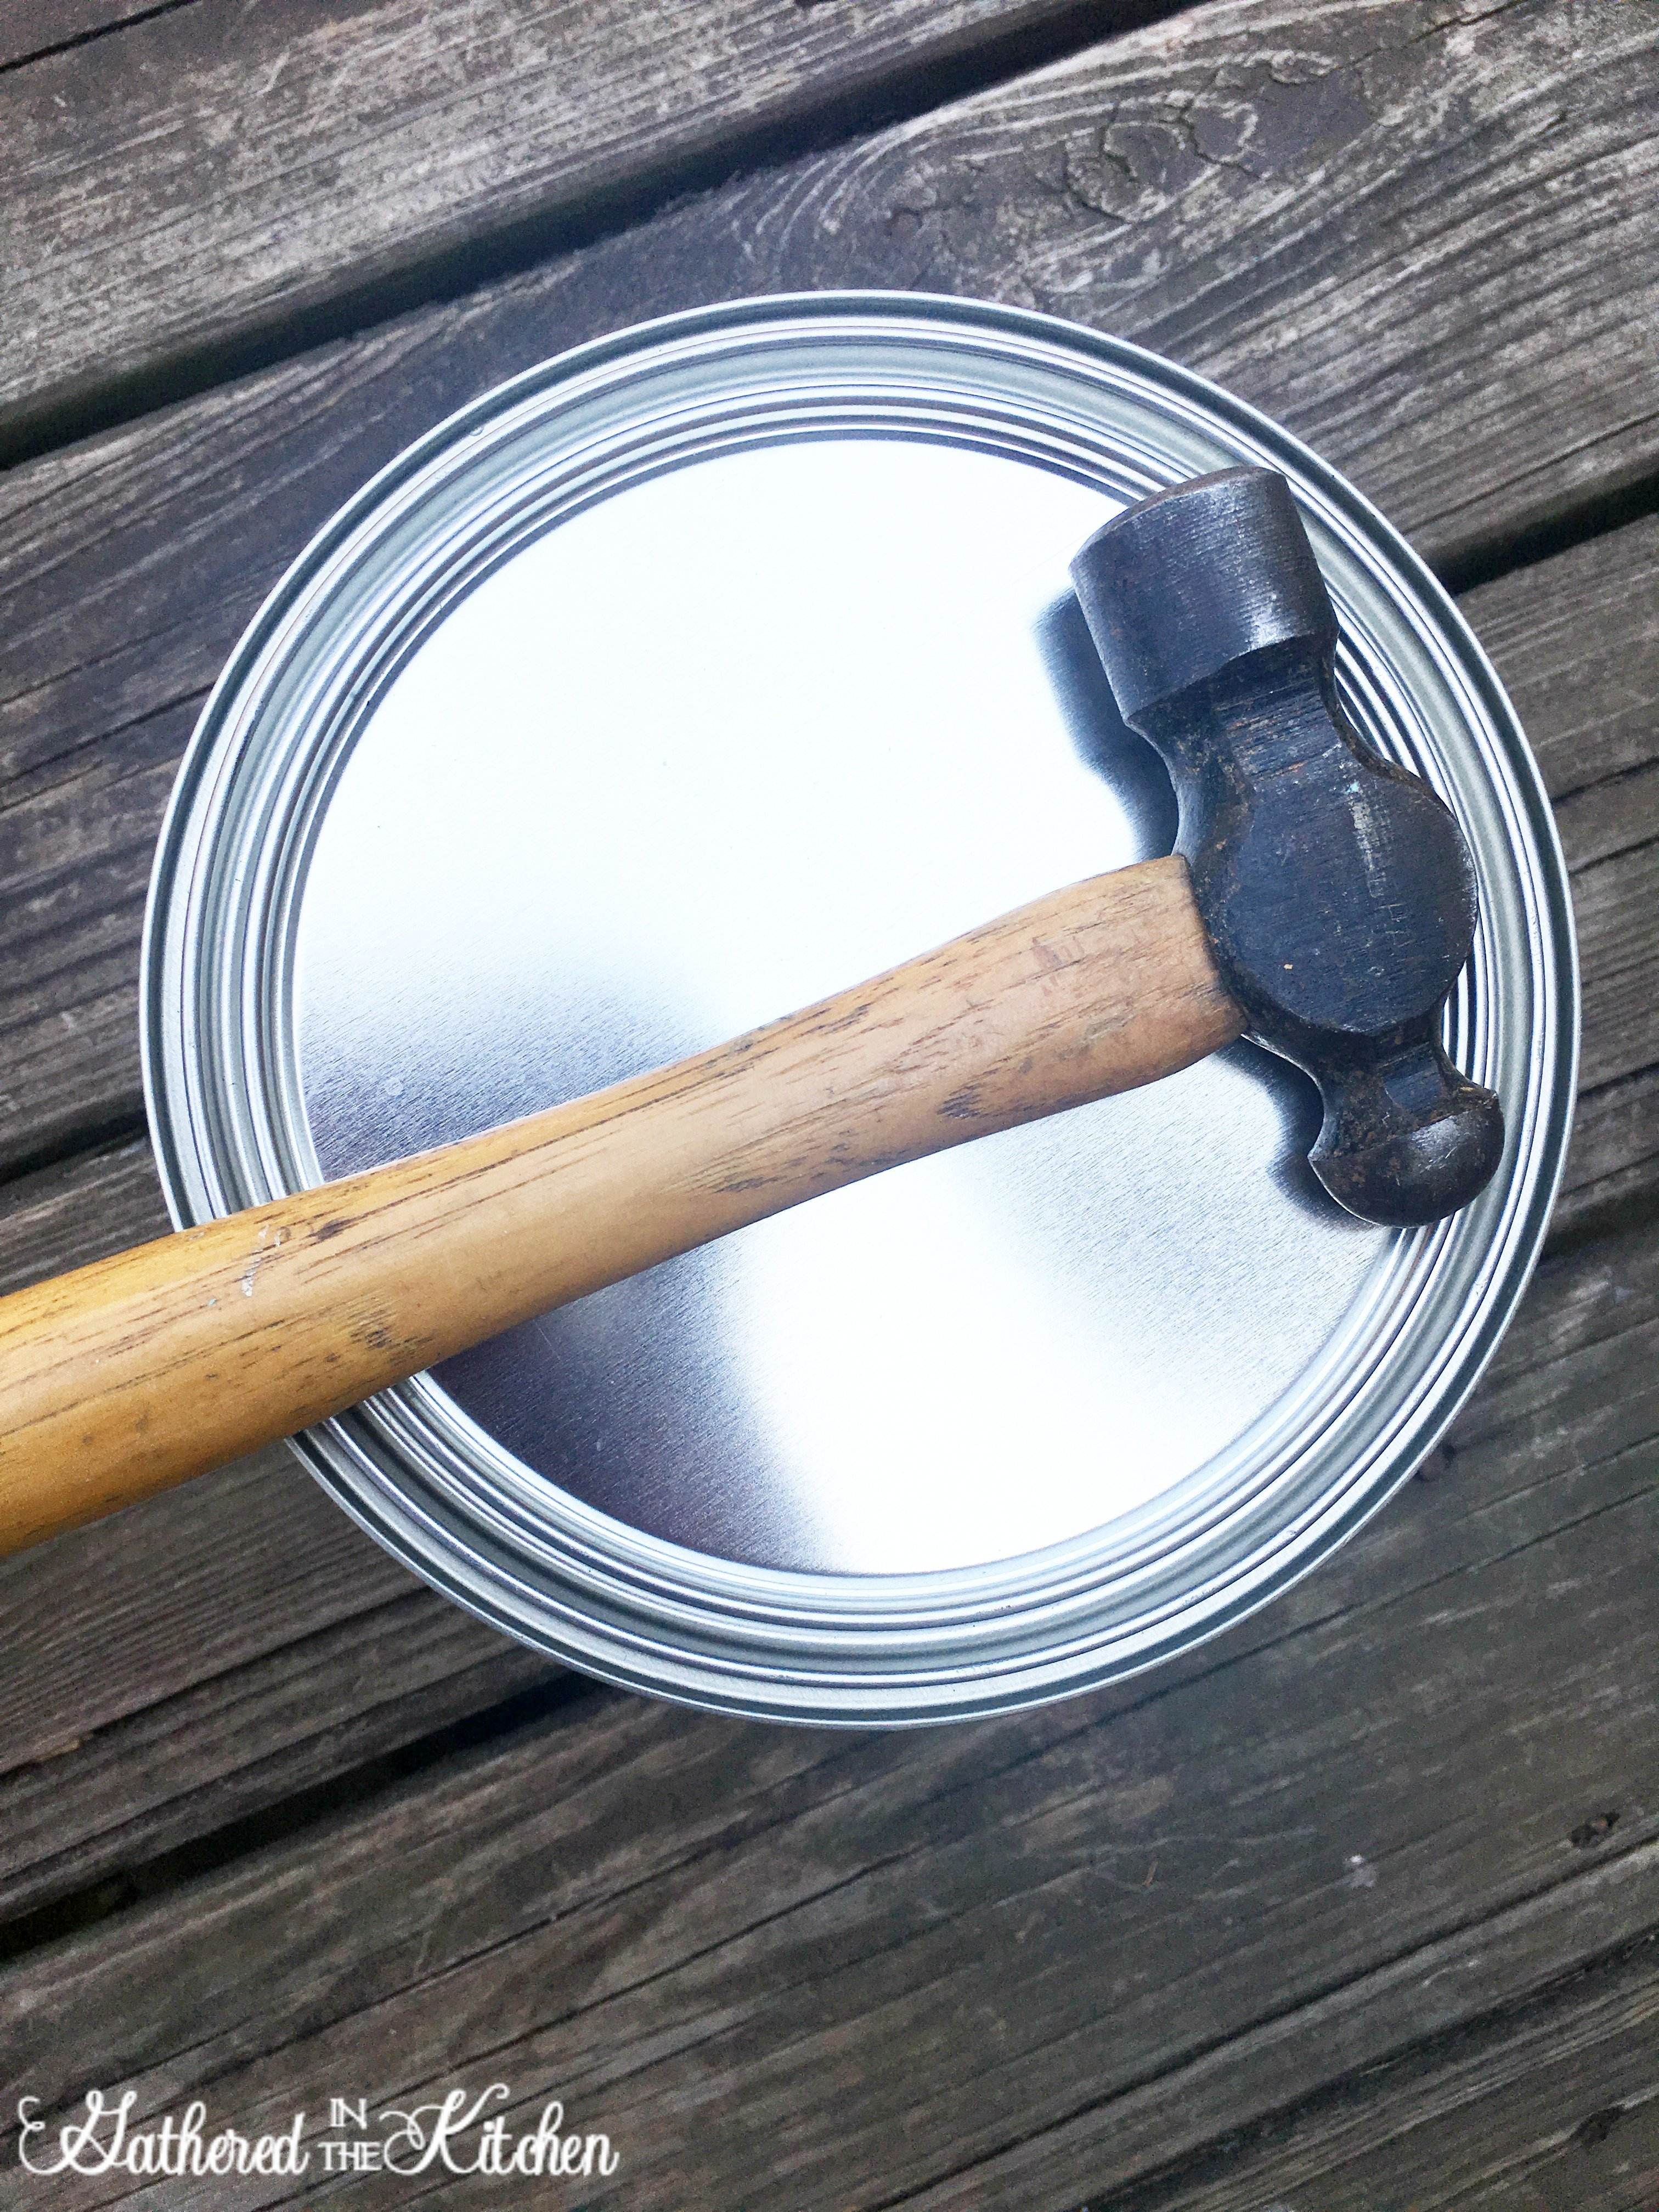 How to Fix Rusty Paint Cans That Won't Seal